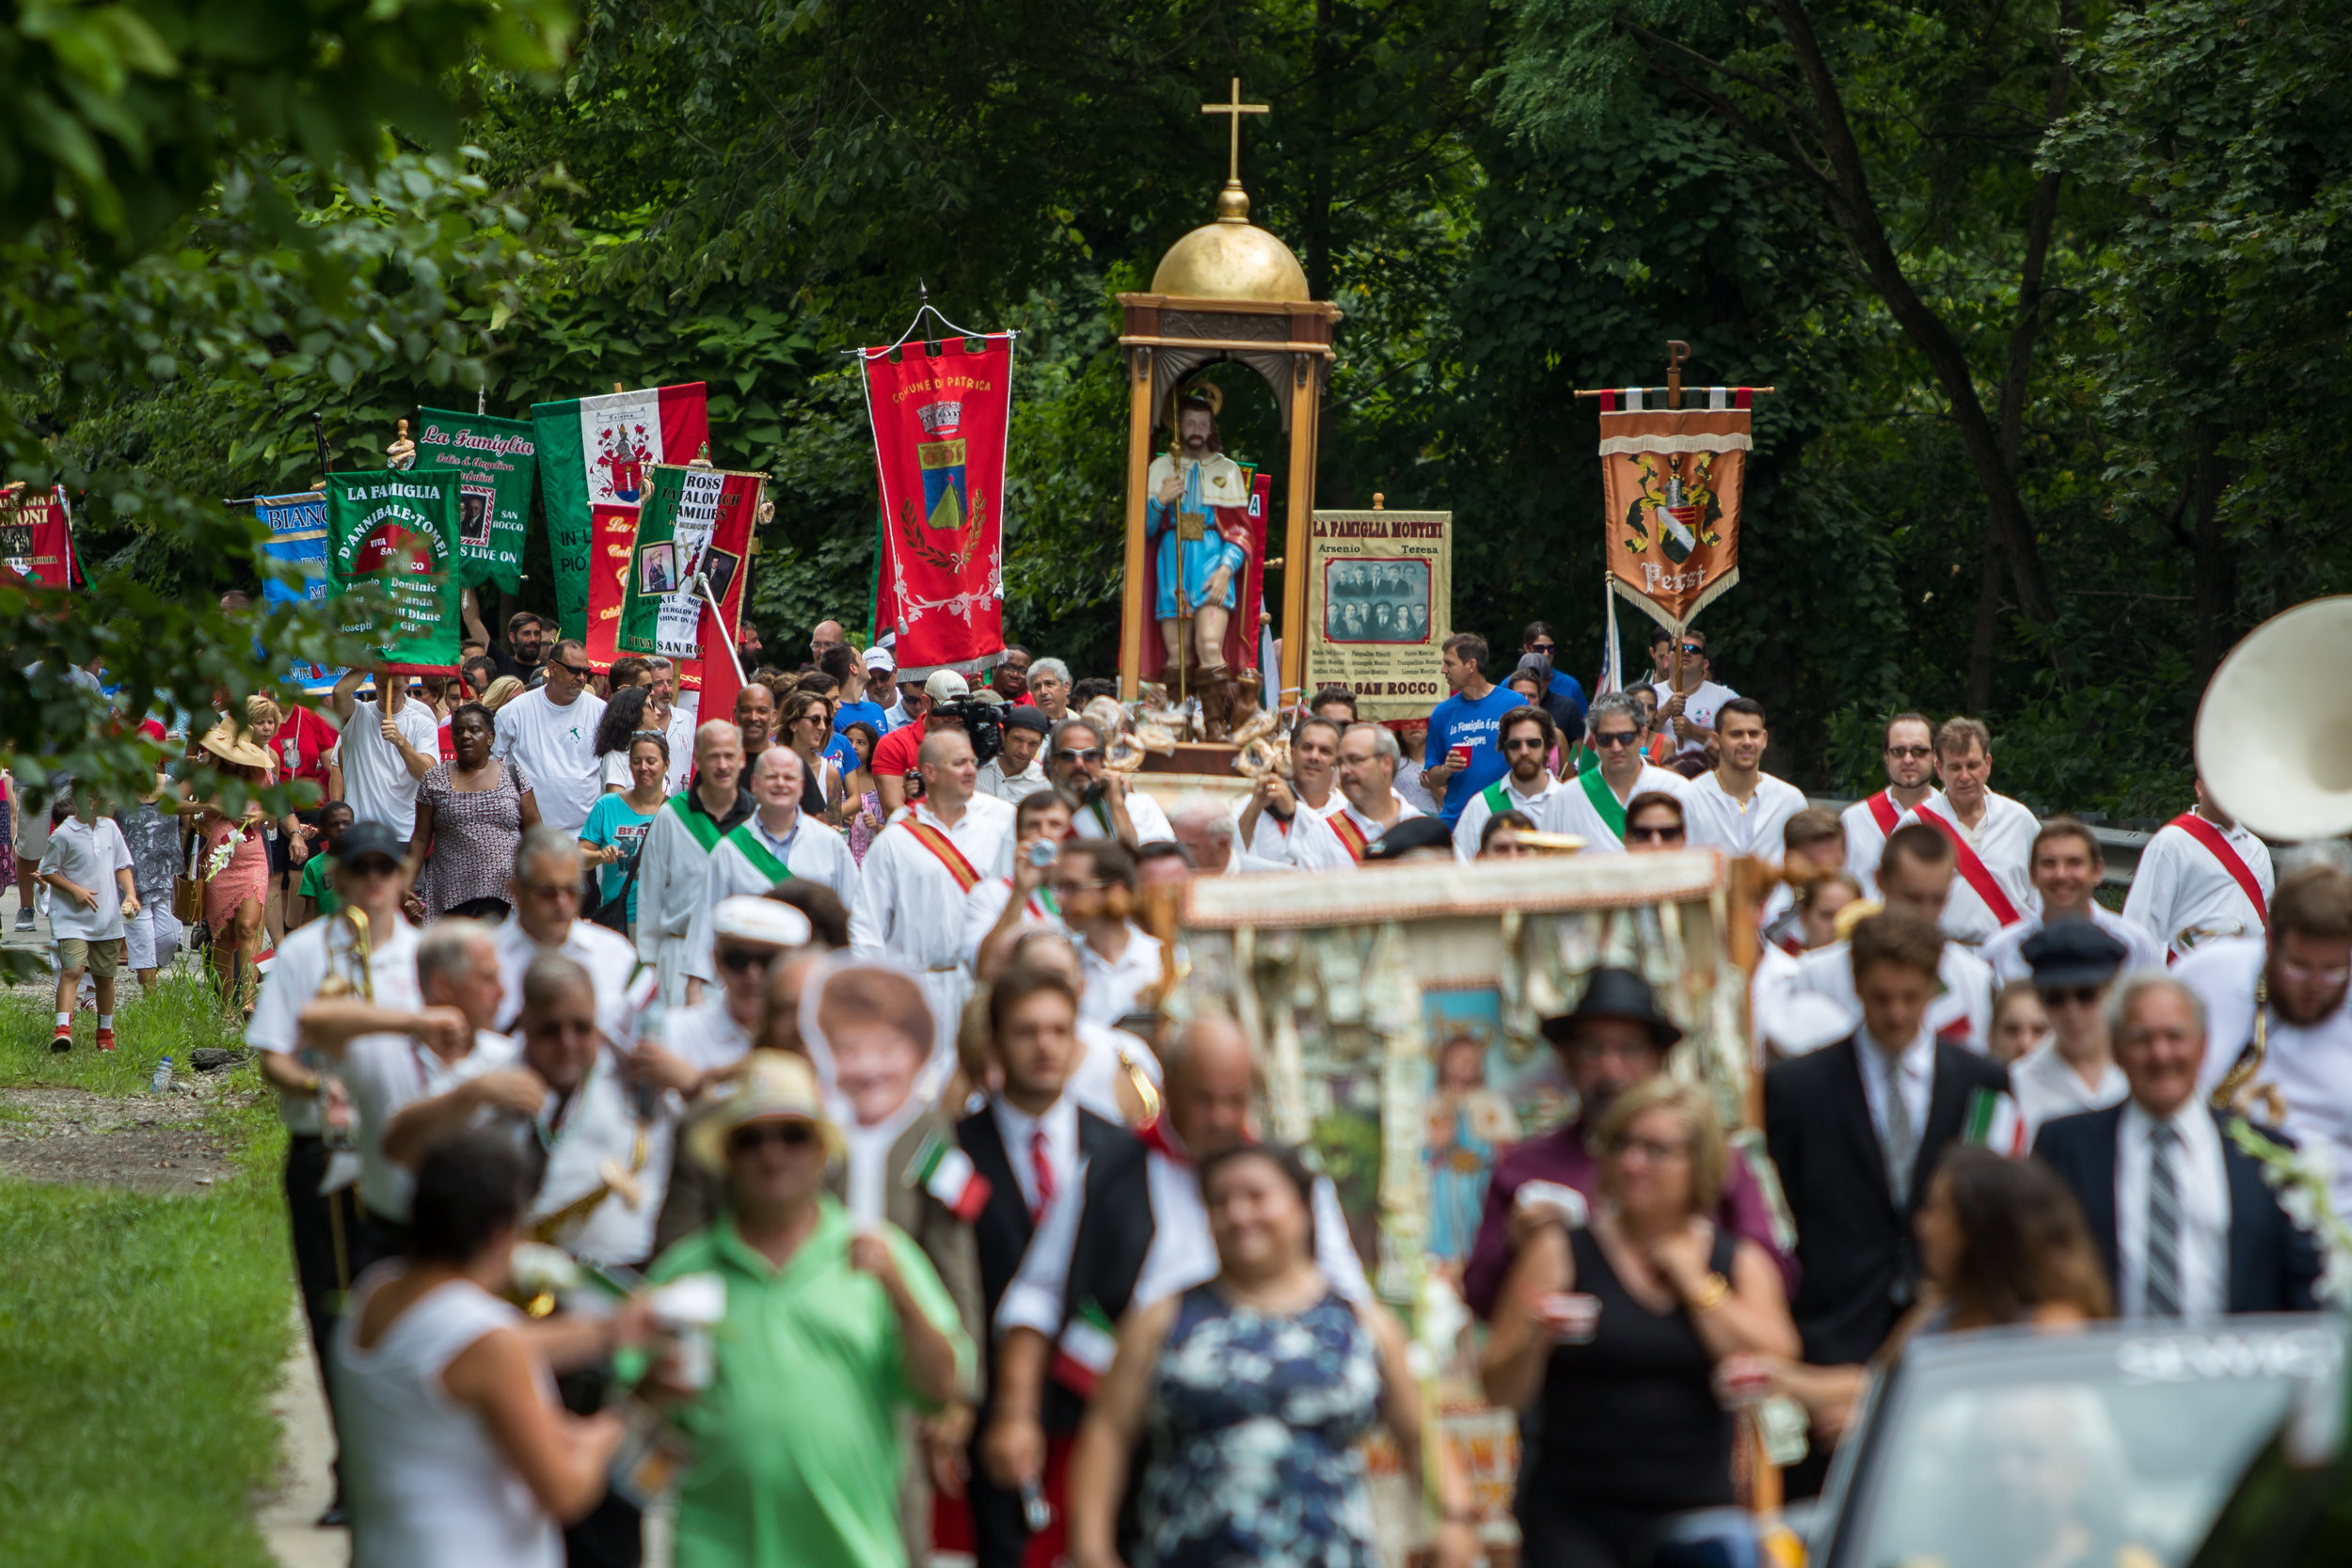 Thousands of people participated in the procession after the San Rocco Liturgy at St. Titus Church in Aliquippa on Sunday morning. The procession featured many families with family banners marching through the streets of Aliquippa with the San Rocco Festa Band and the statue of San Rocco.